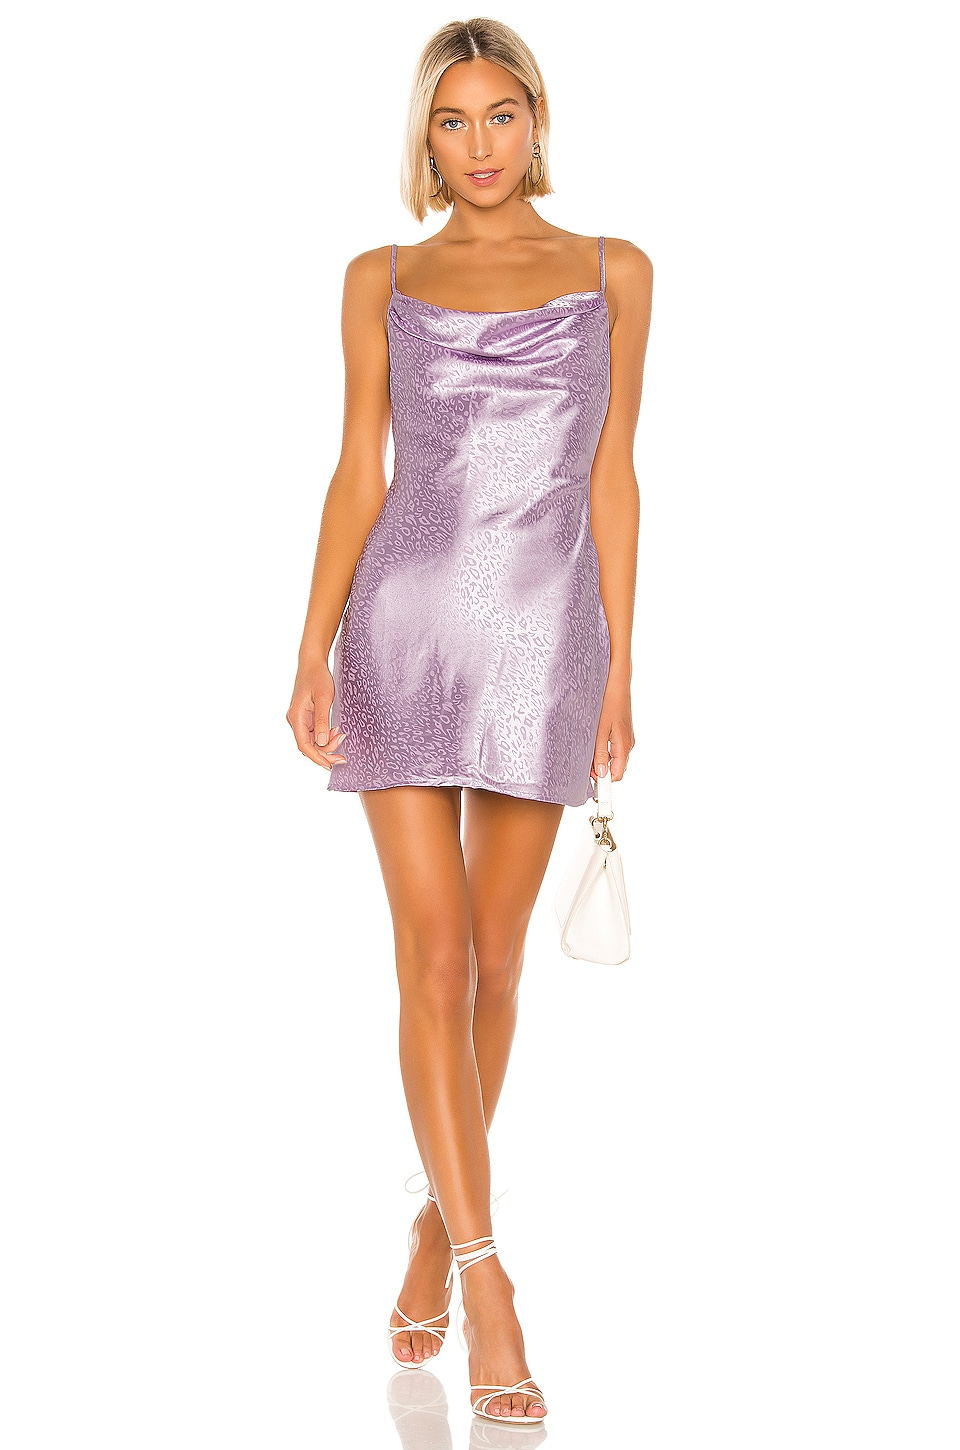 L'Academie Take Me Away Dress in Lavender